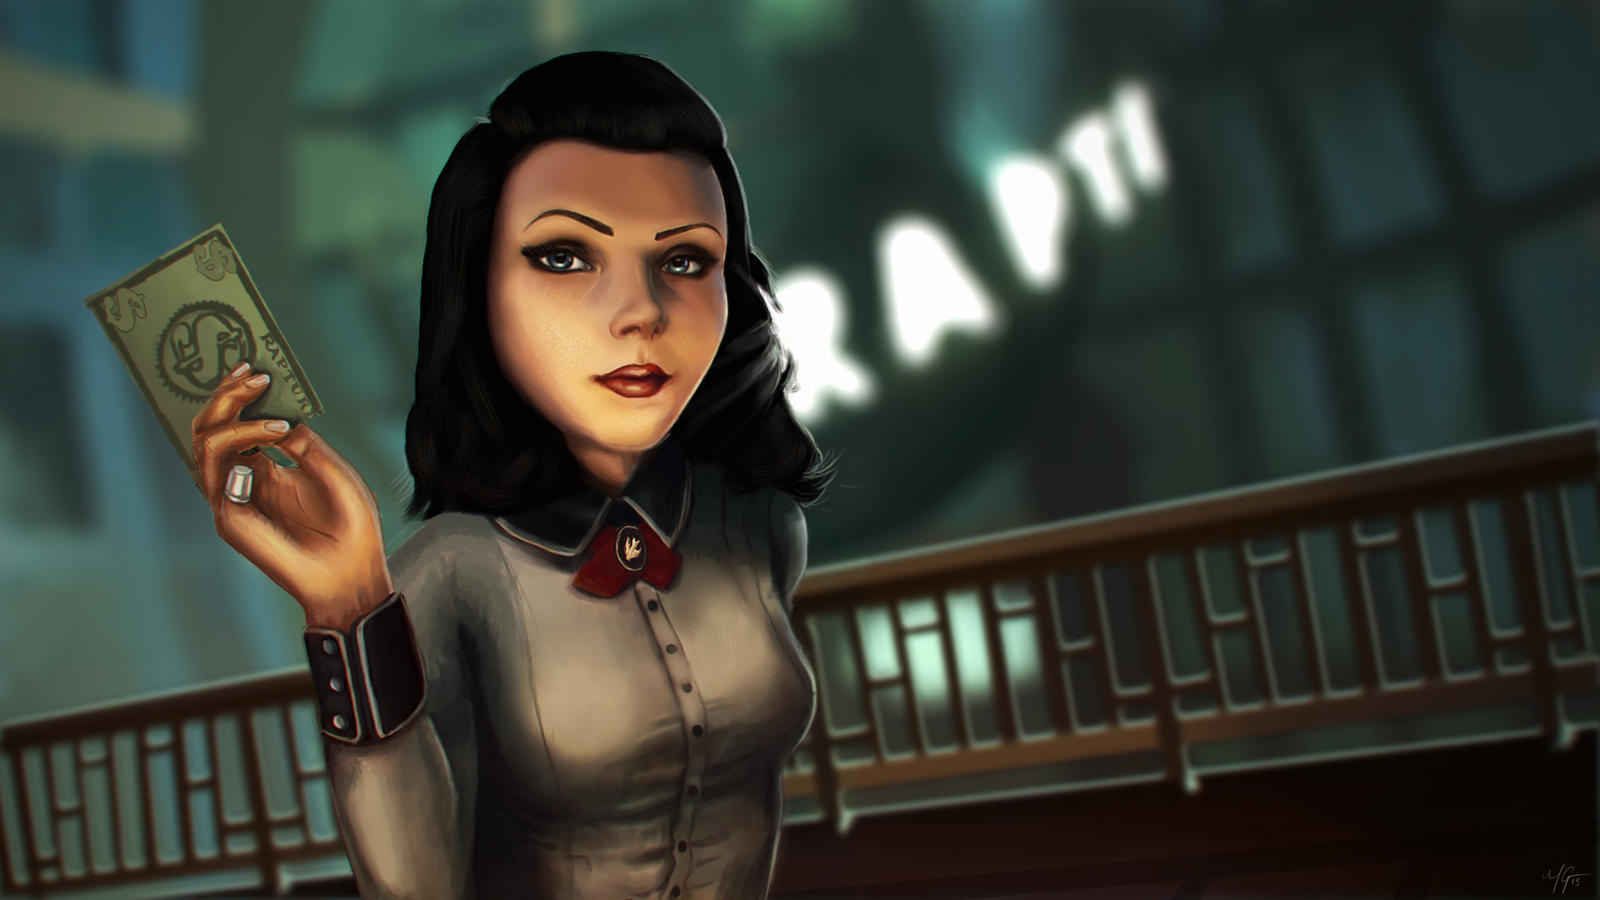 Elizabeth - Burial at Sea by omgmat